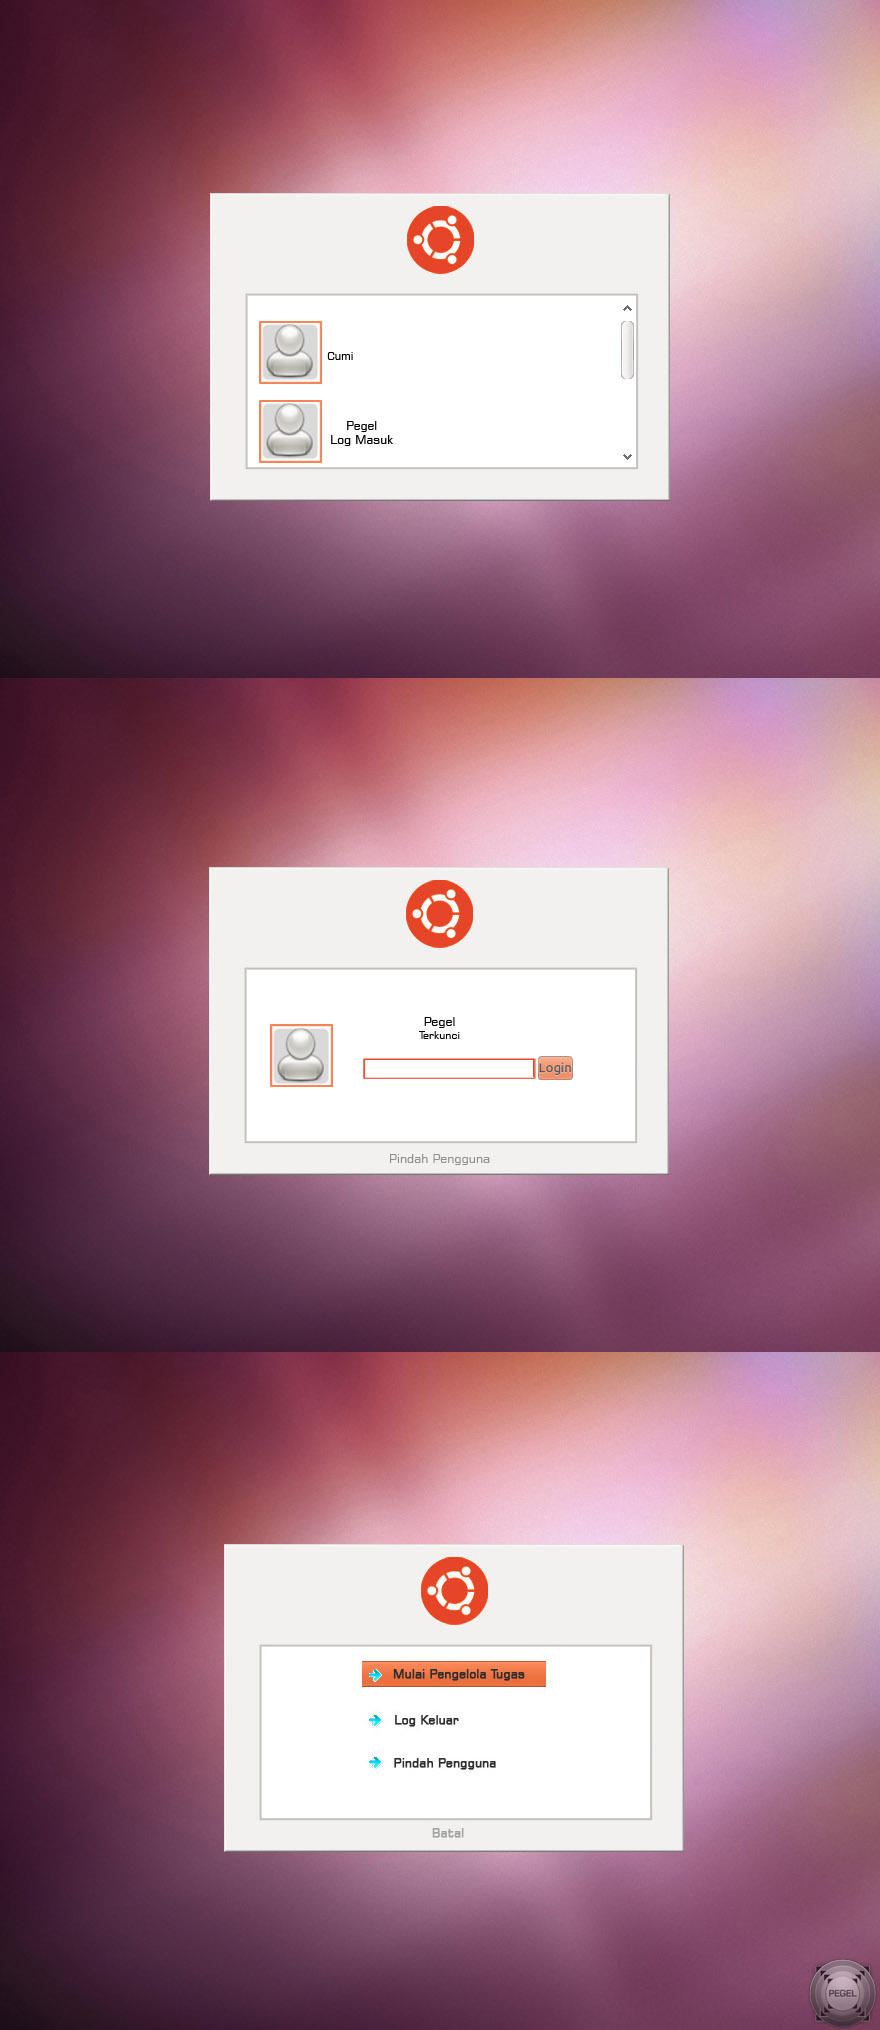 Ubuntu Logon for Windows 7 by pegel